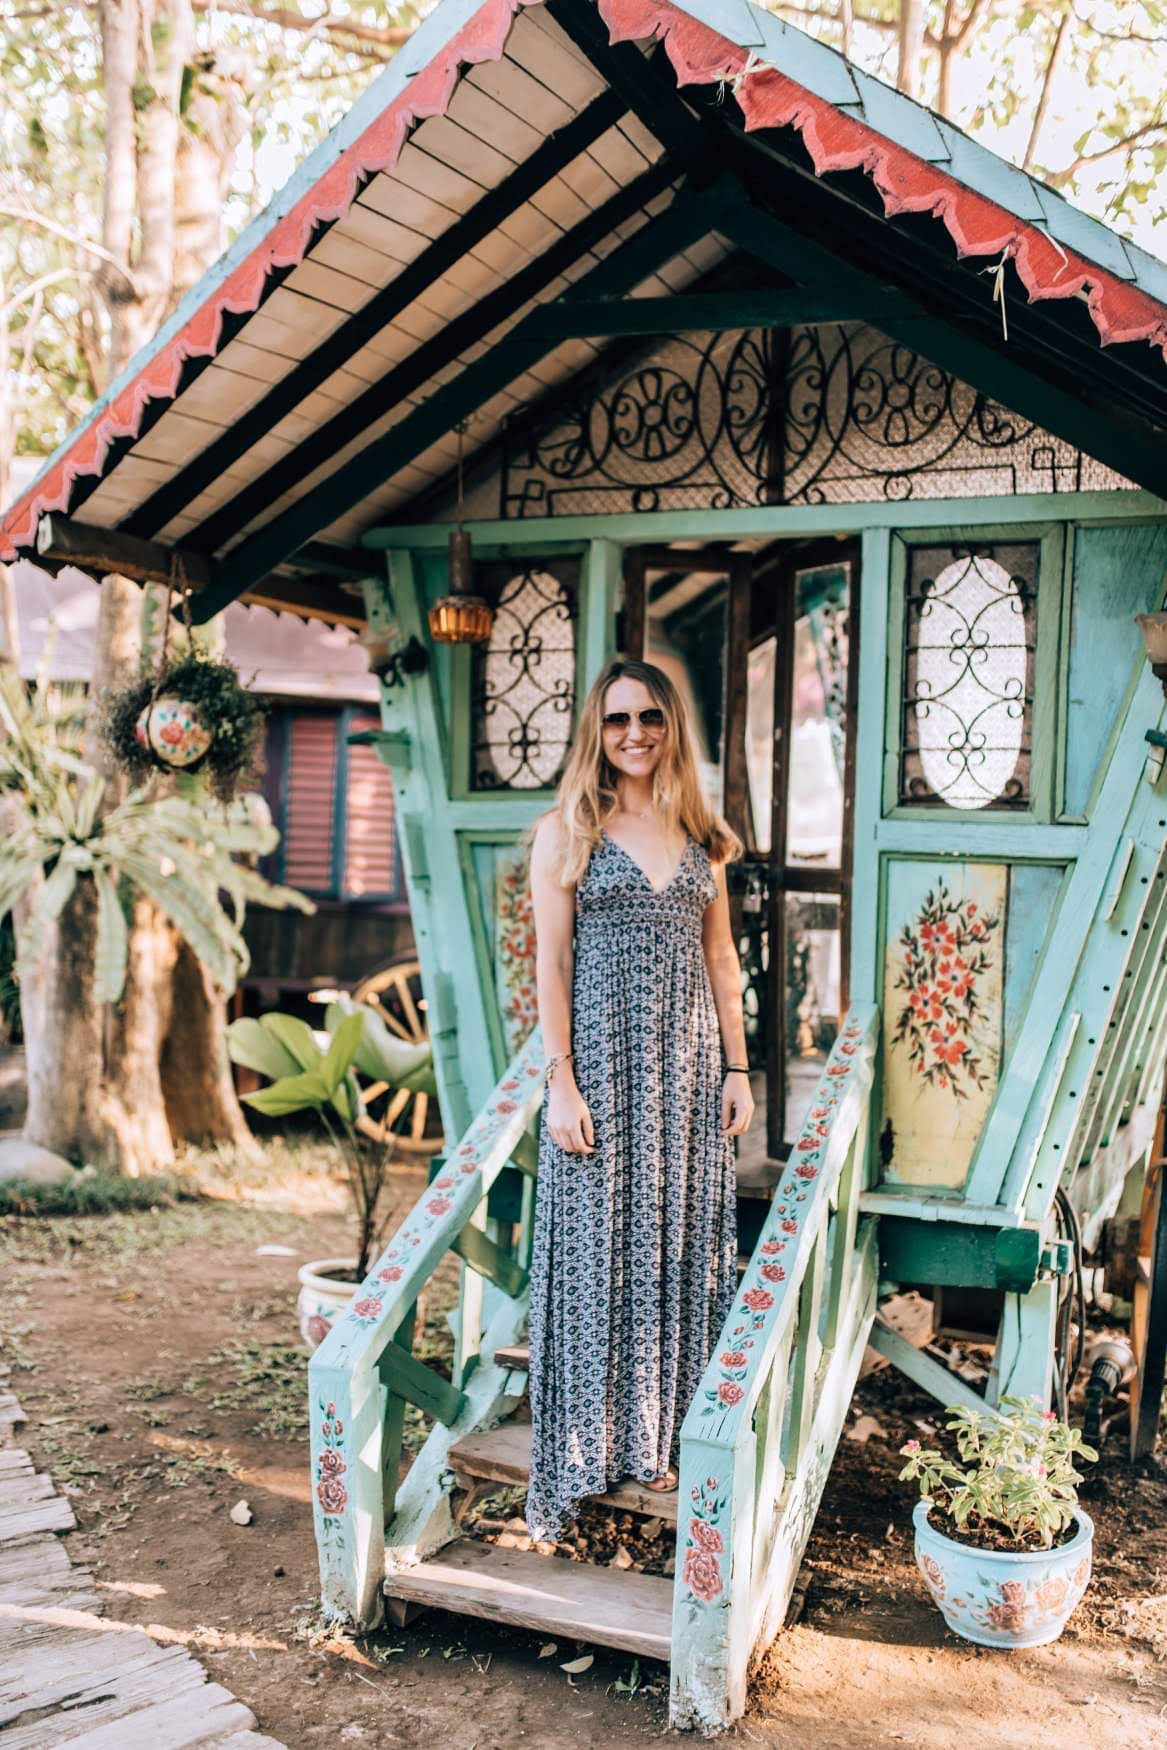 Hannah Corderman standing on a step at a Bali beach bar - Wanderlight Moments - We Are Travel Girls - Travel Blogger